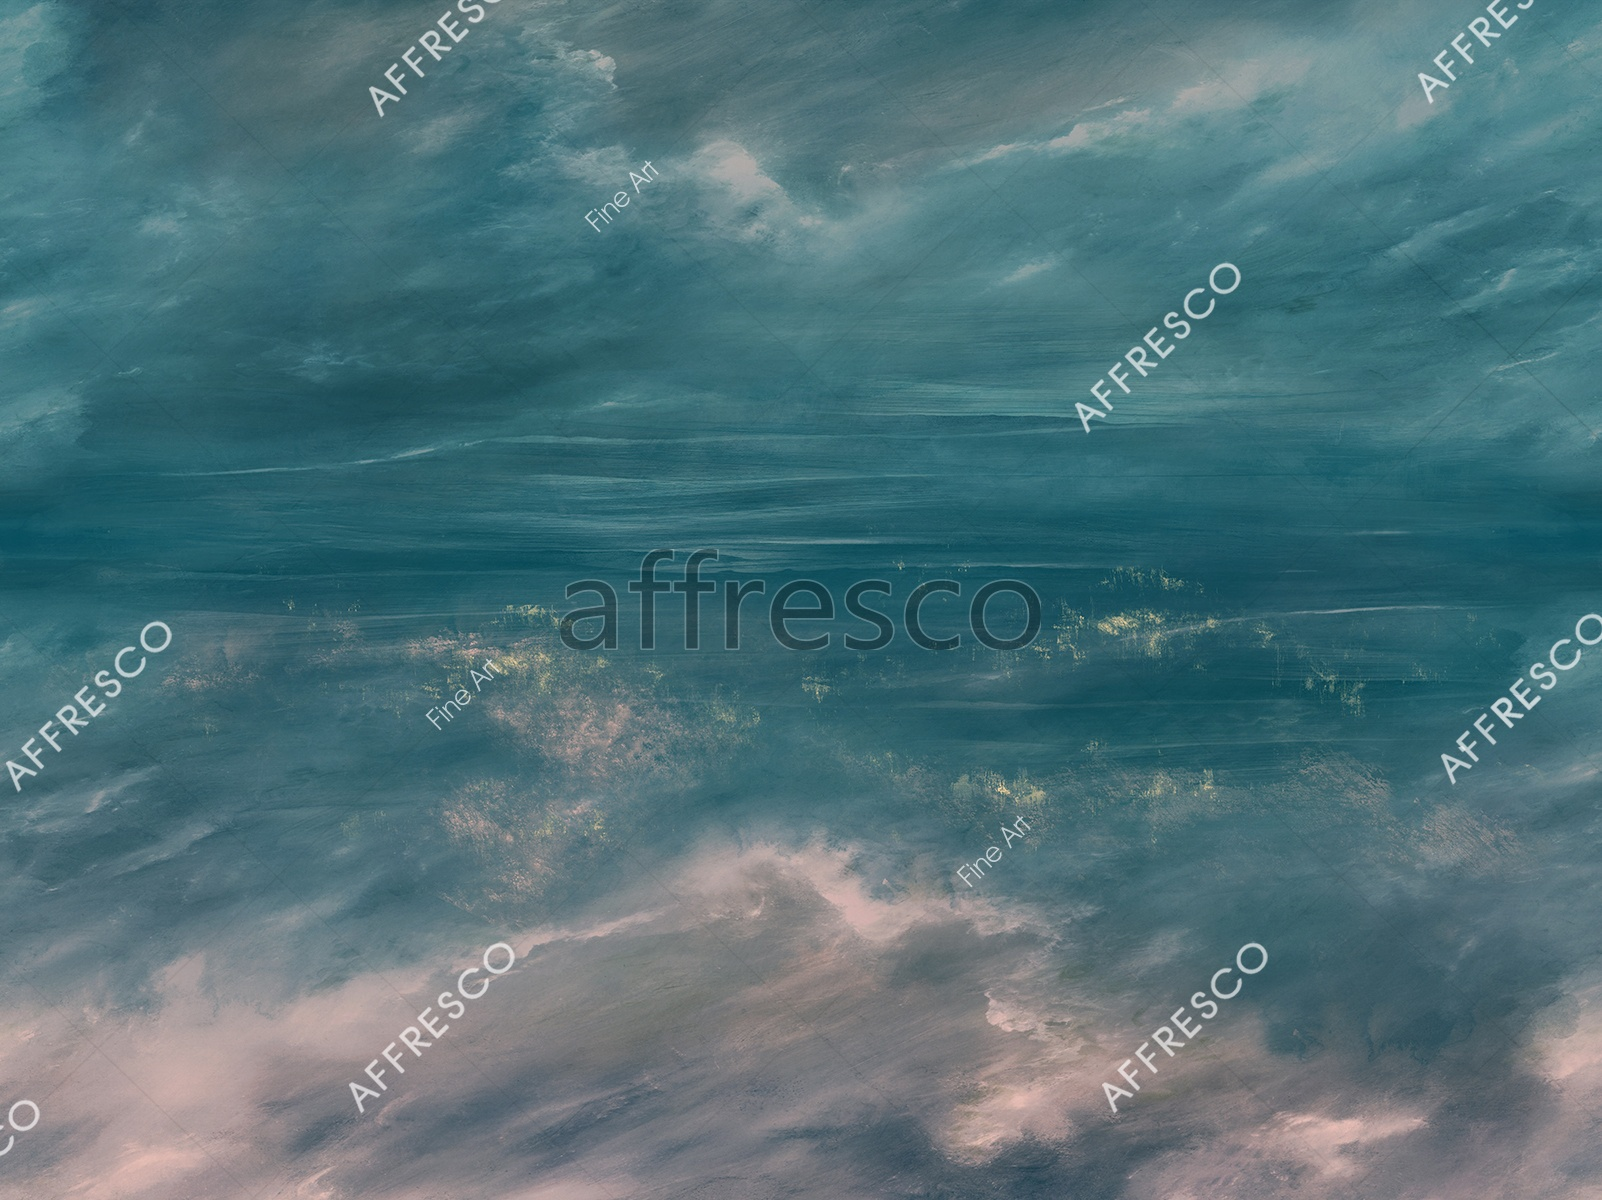 RE894-COL1 | Fine Art | Affresco Factory